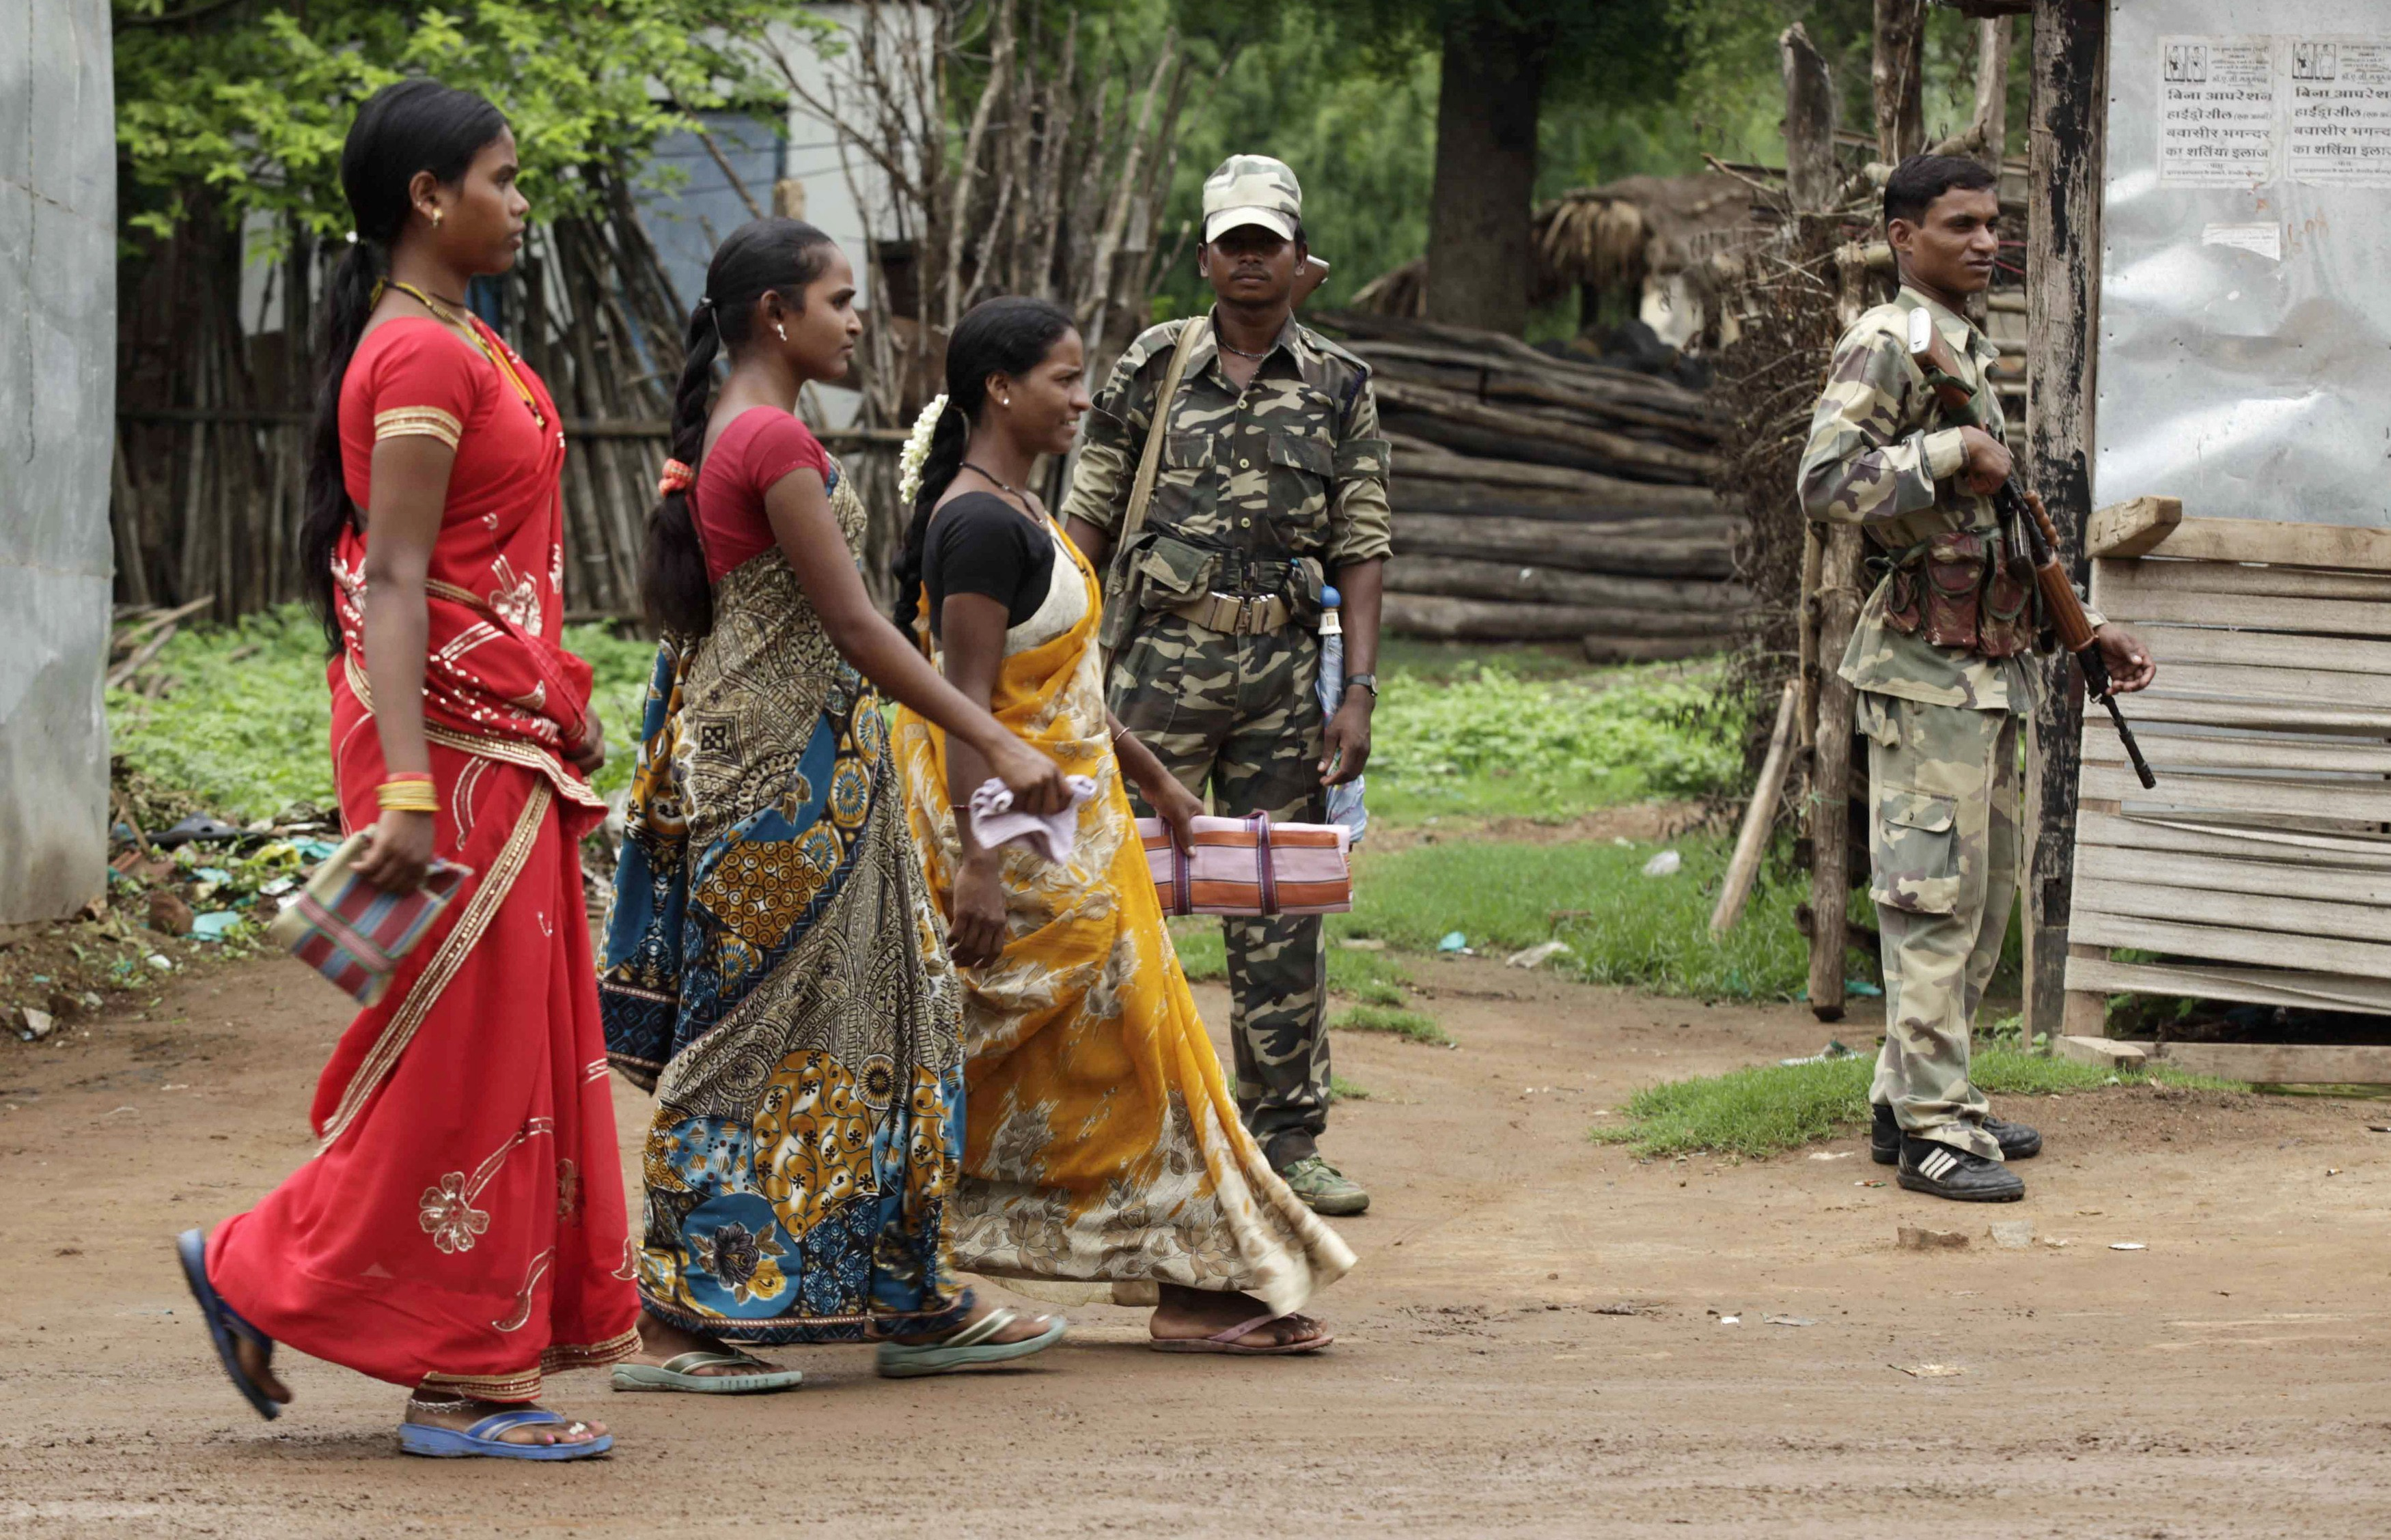 Women in Awapalli village walk past members of the security forces. Credit: Rupak De Chowdhuri/Reuters.